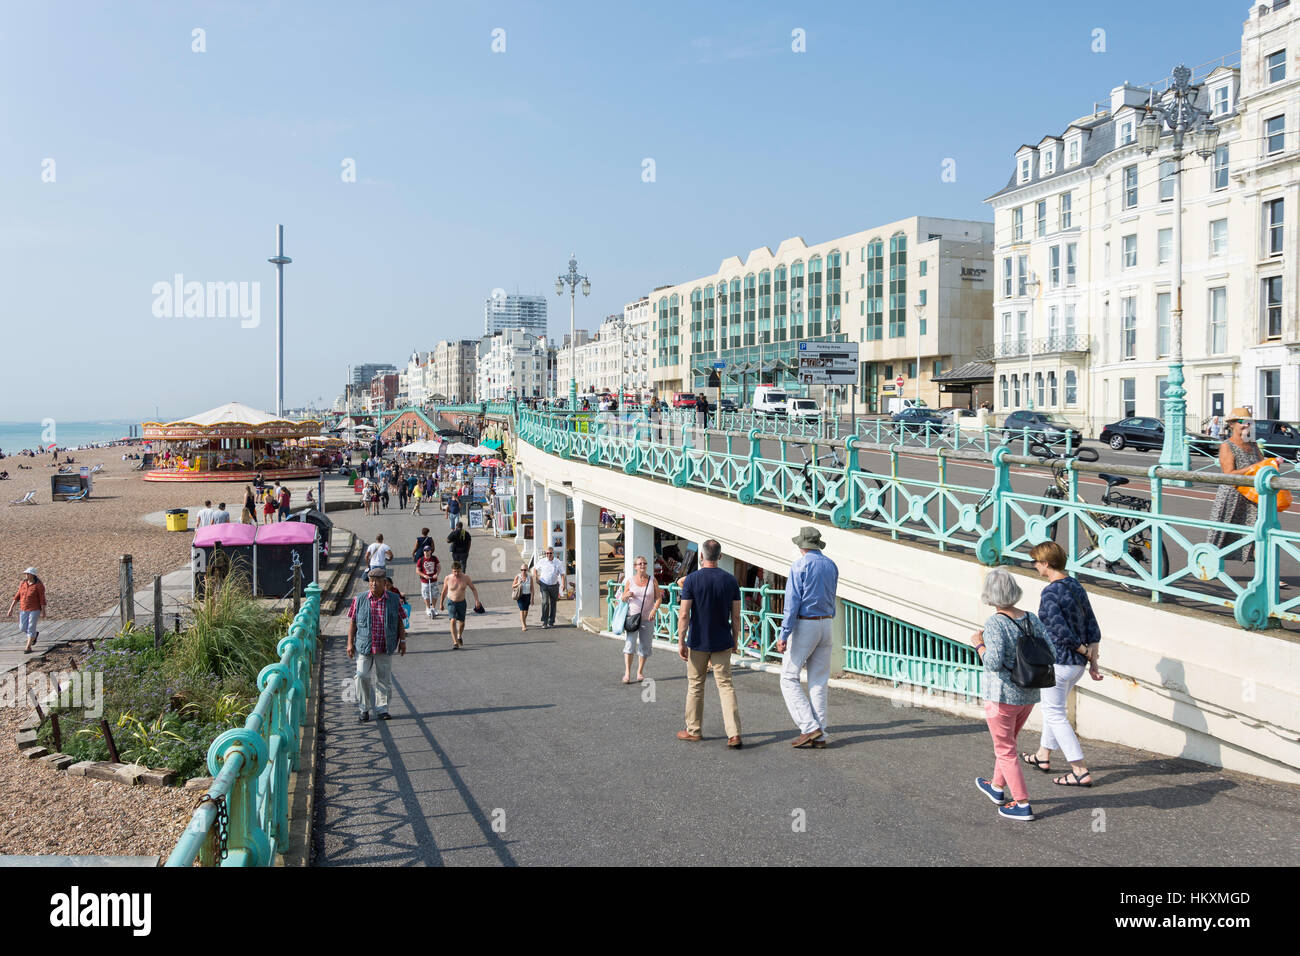 Beach promenade, Kings Road Arches, Brighton, East Sussex, England, United Kingdom Stock Photo